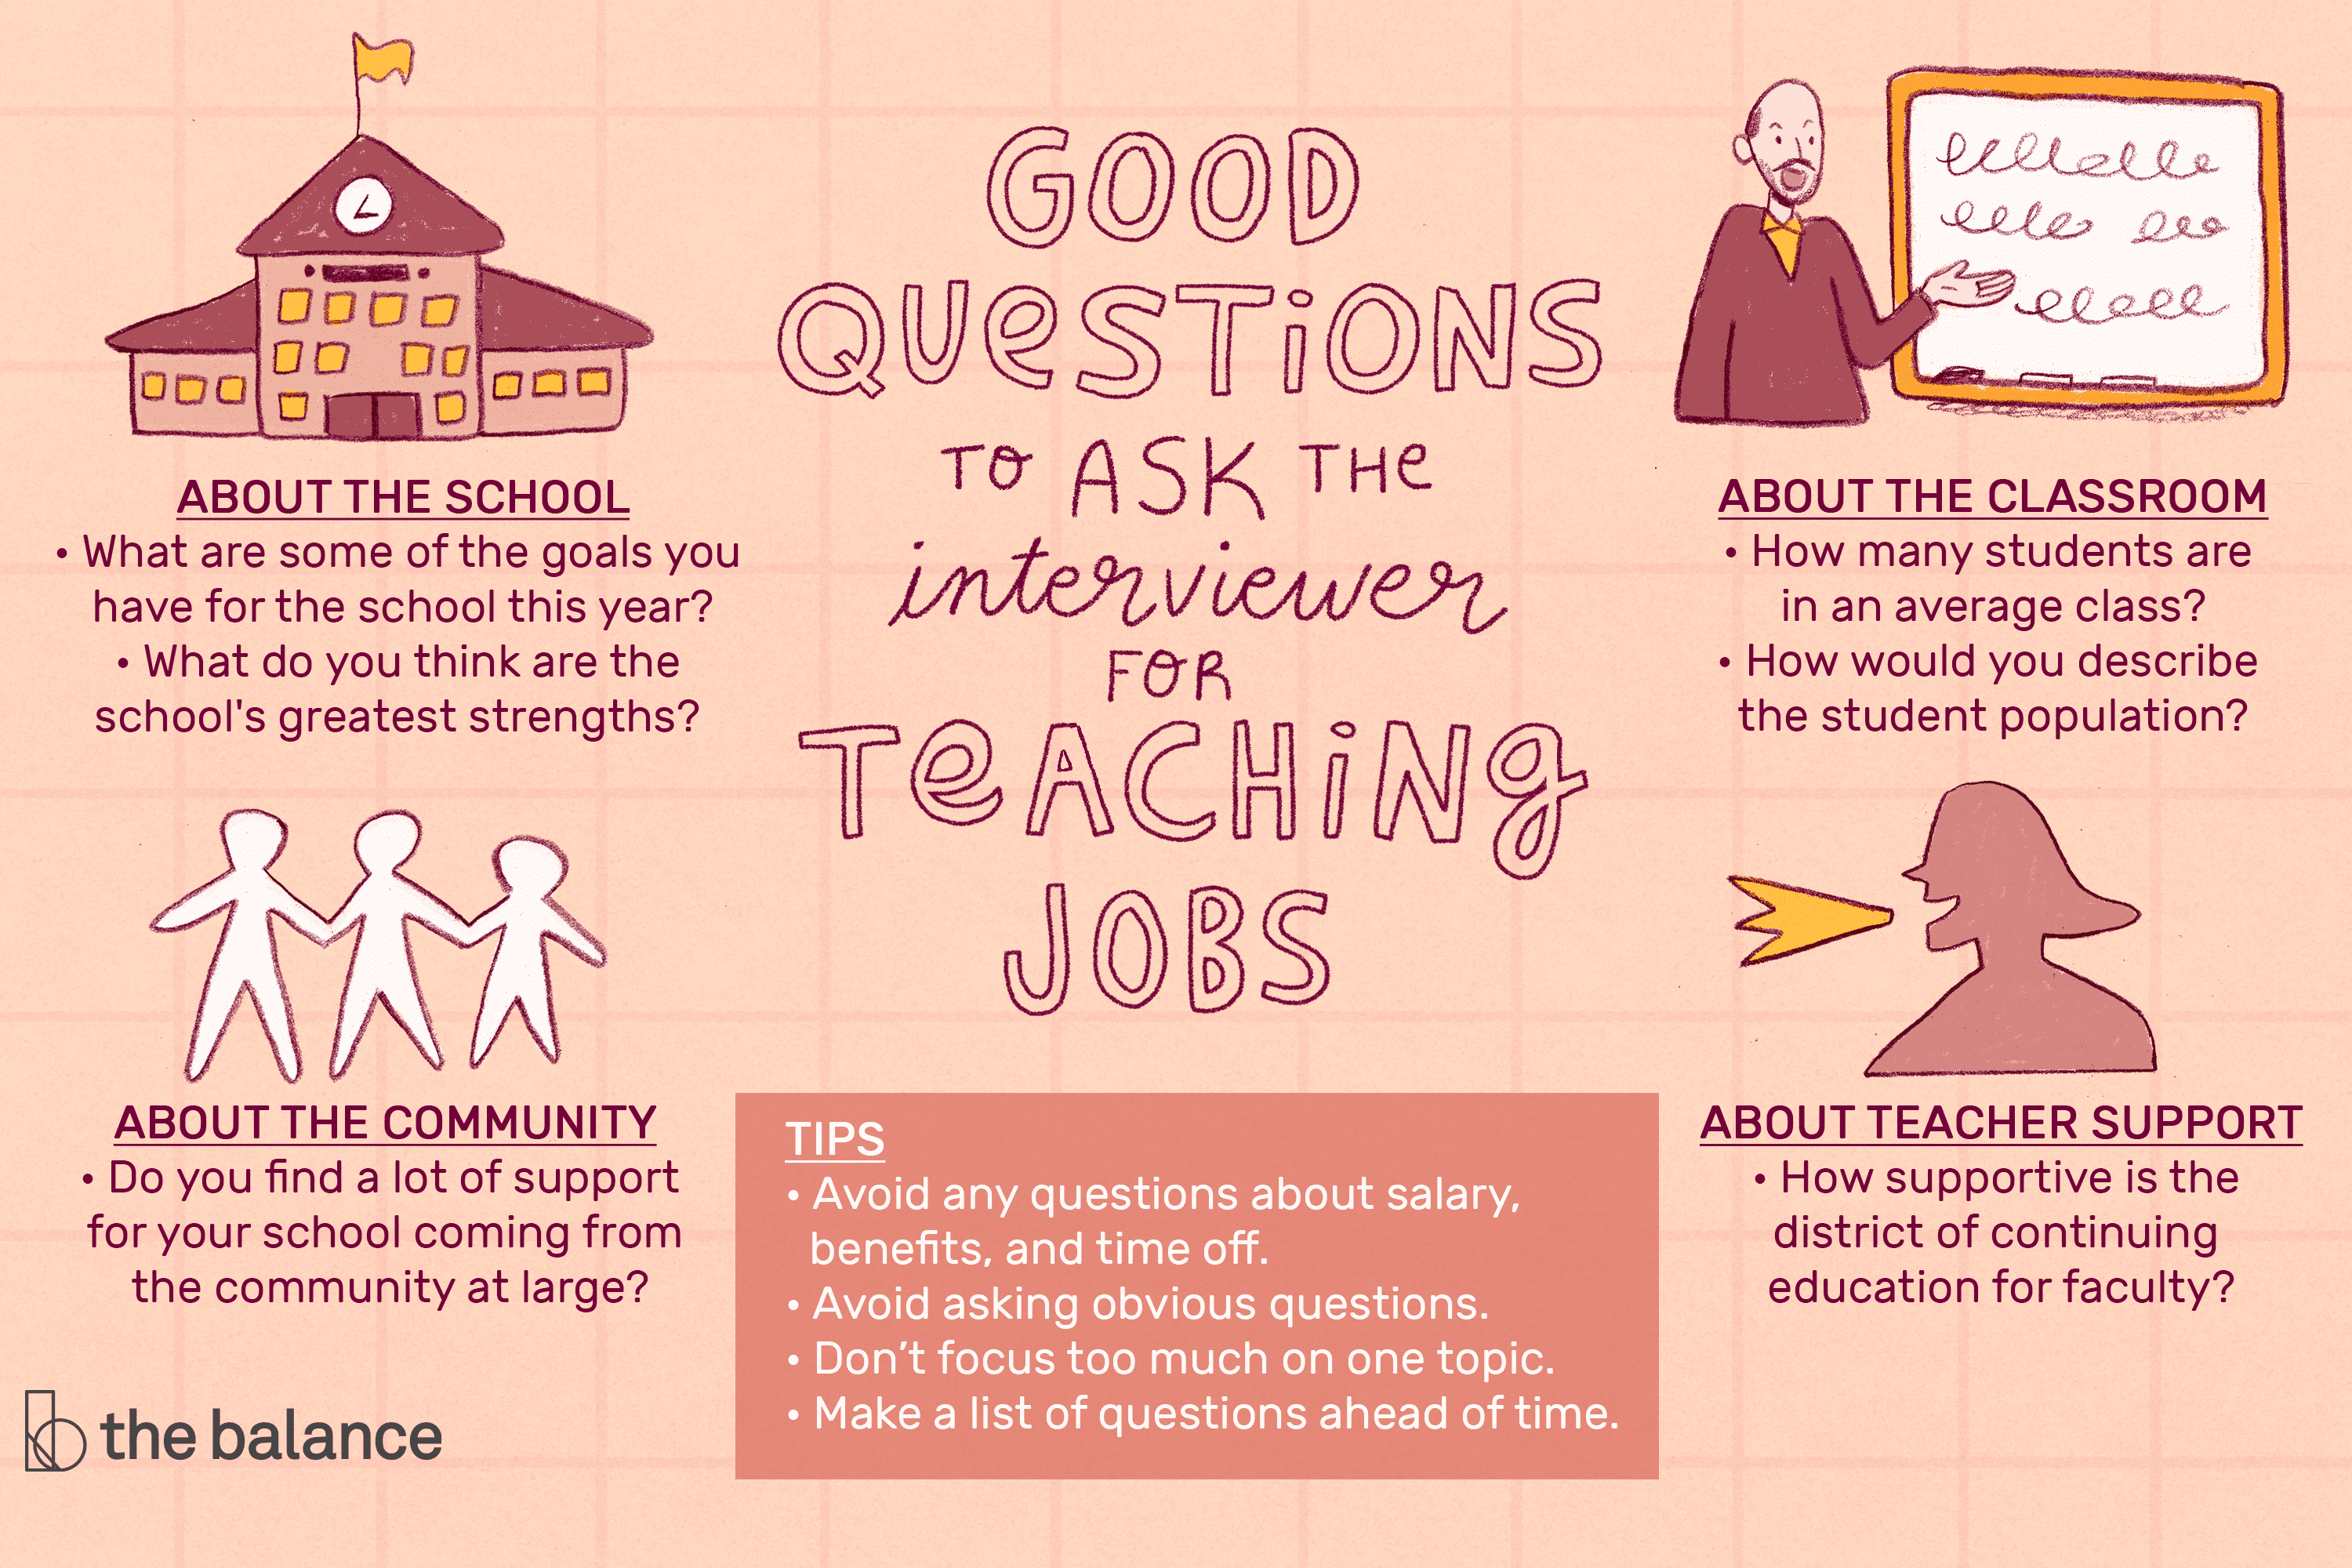 Good Questions to Ask the Interviewer for Teaching Jobs